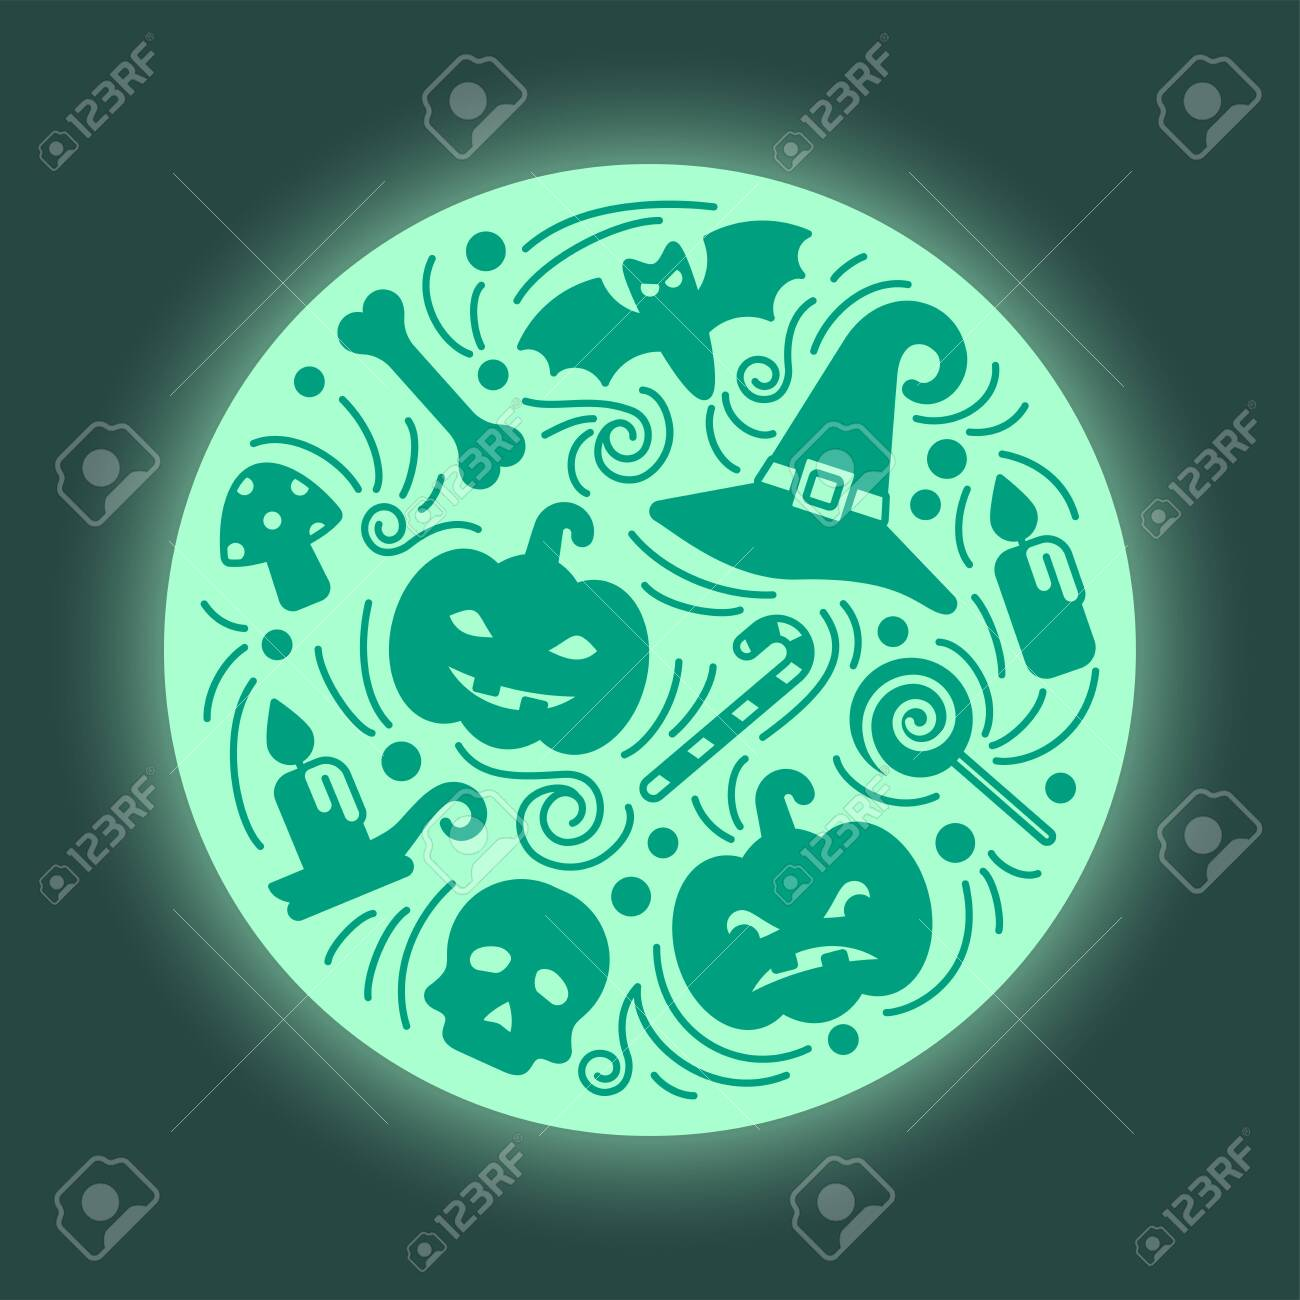 Halloween card round concept in doodle style - 130984727